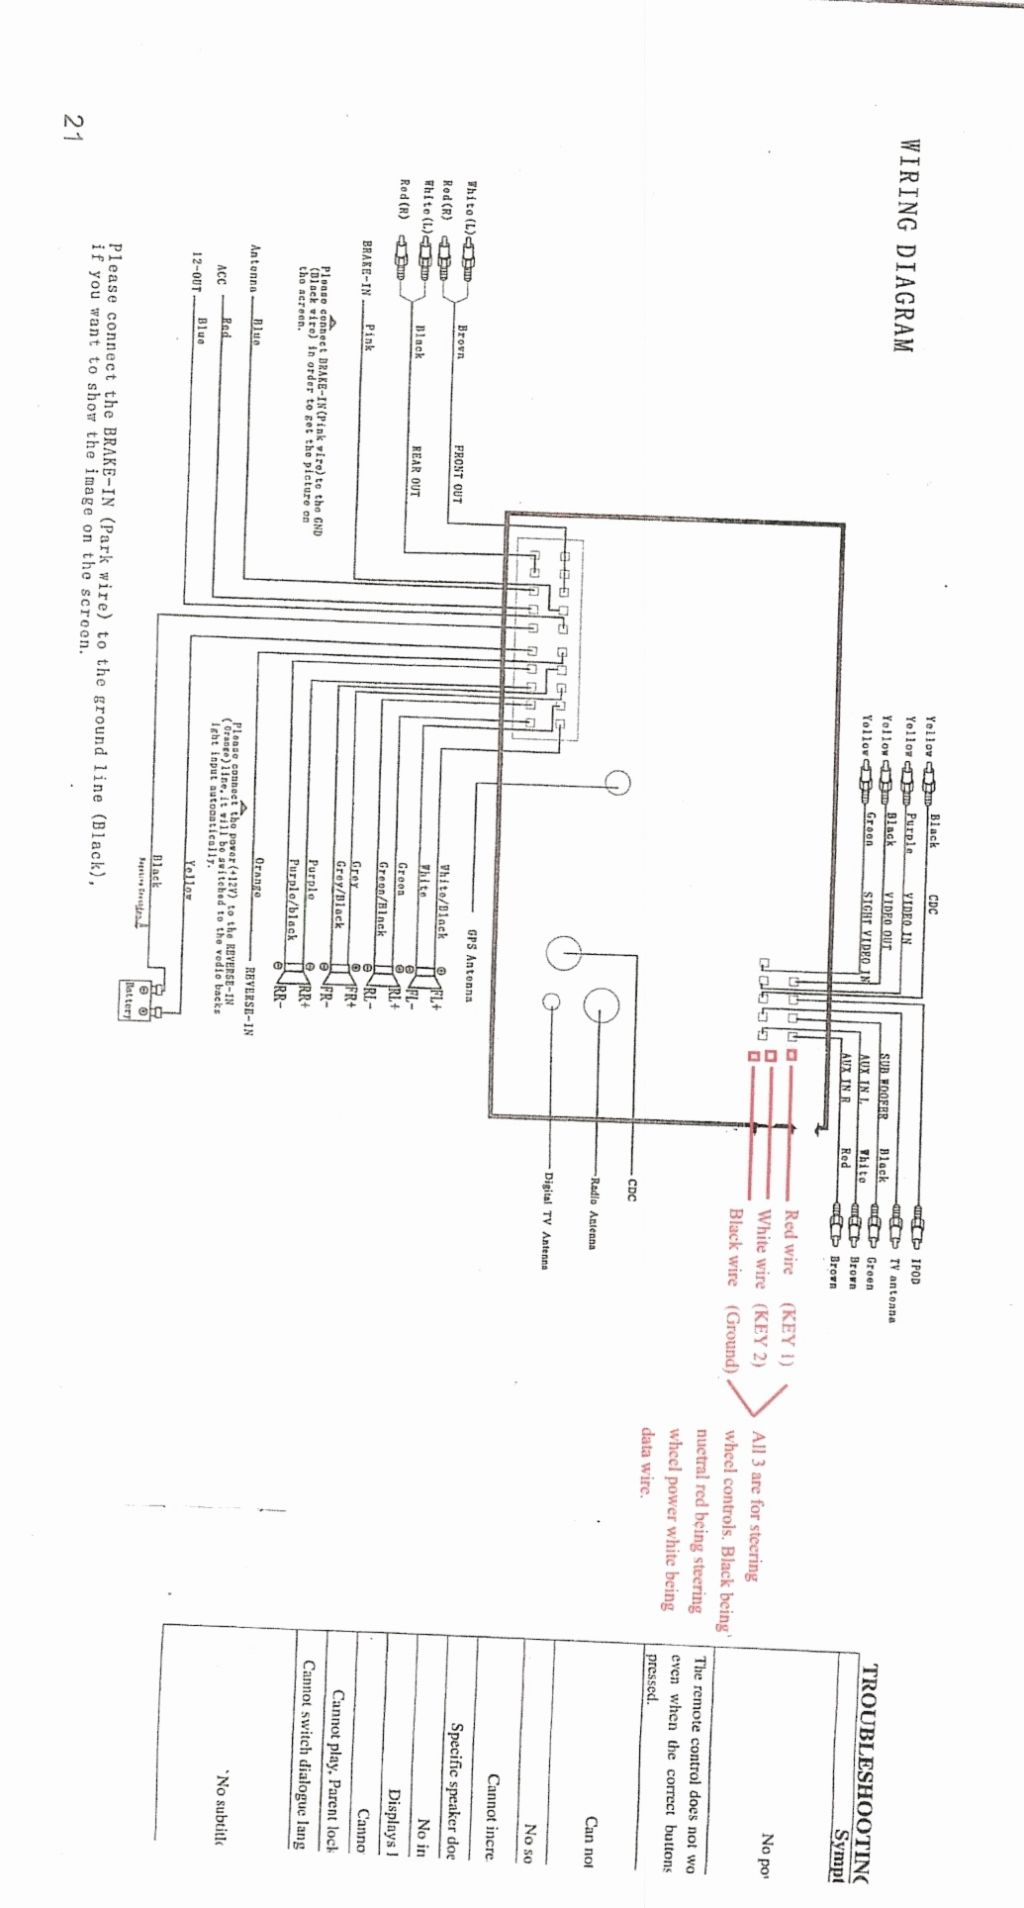 hight resolution of white rodgers 24a01g 3 wiring diagram axxess steering wheel control interface wiring diagram download white